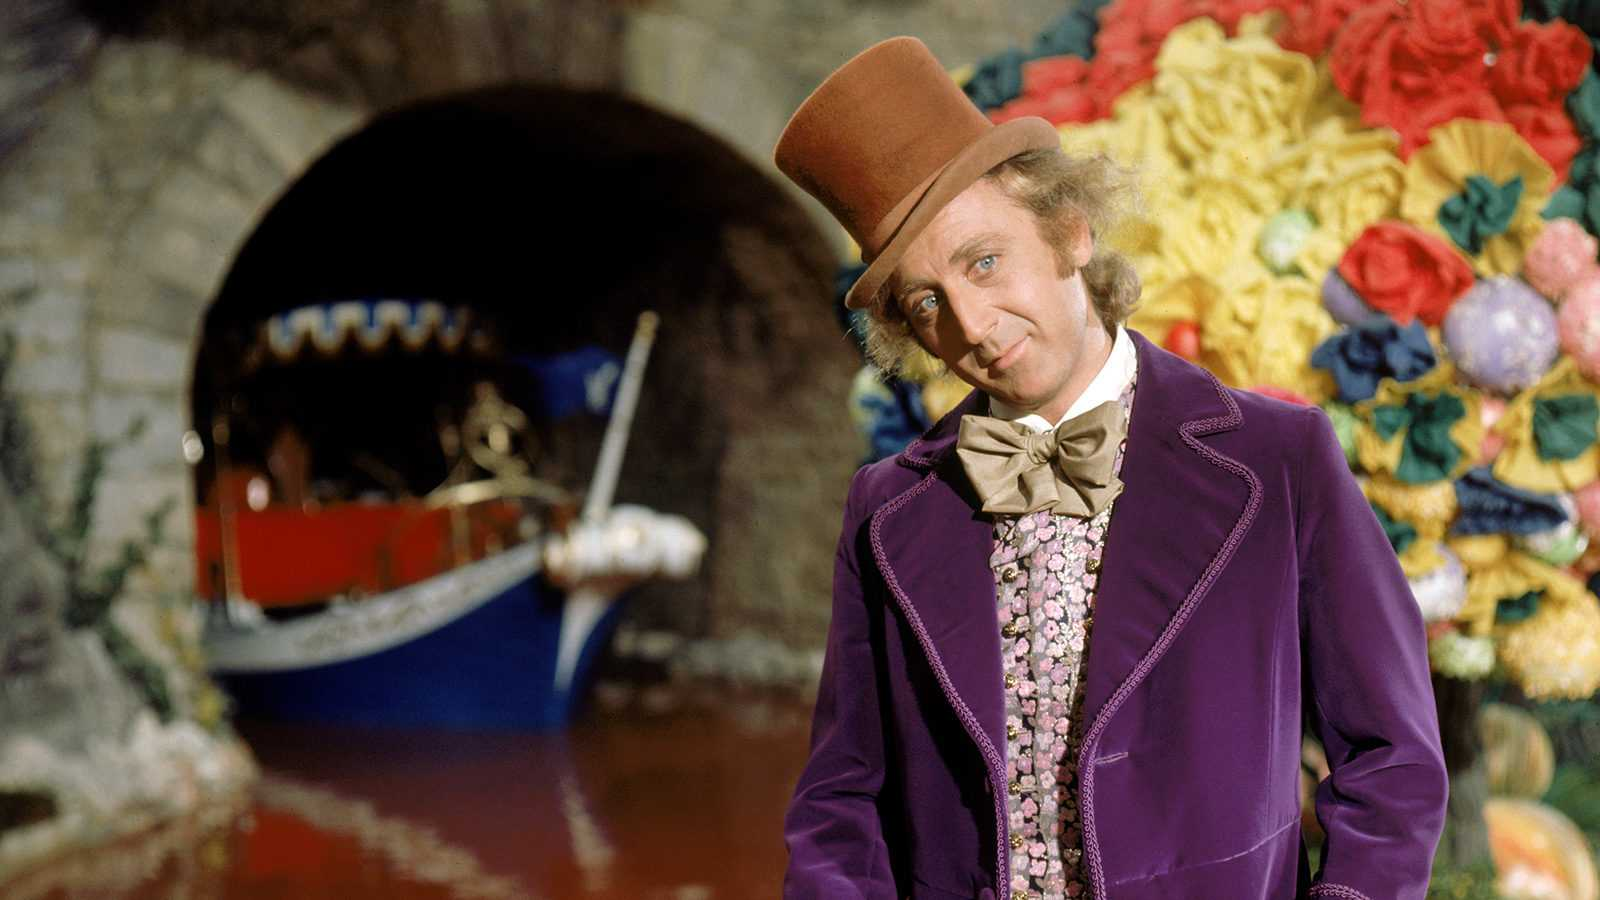 Are You Ready For A New Willy Wonka Film? | Willy Wonka